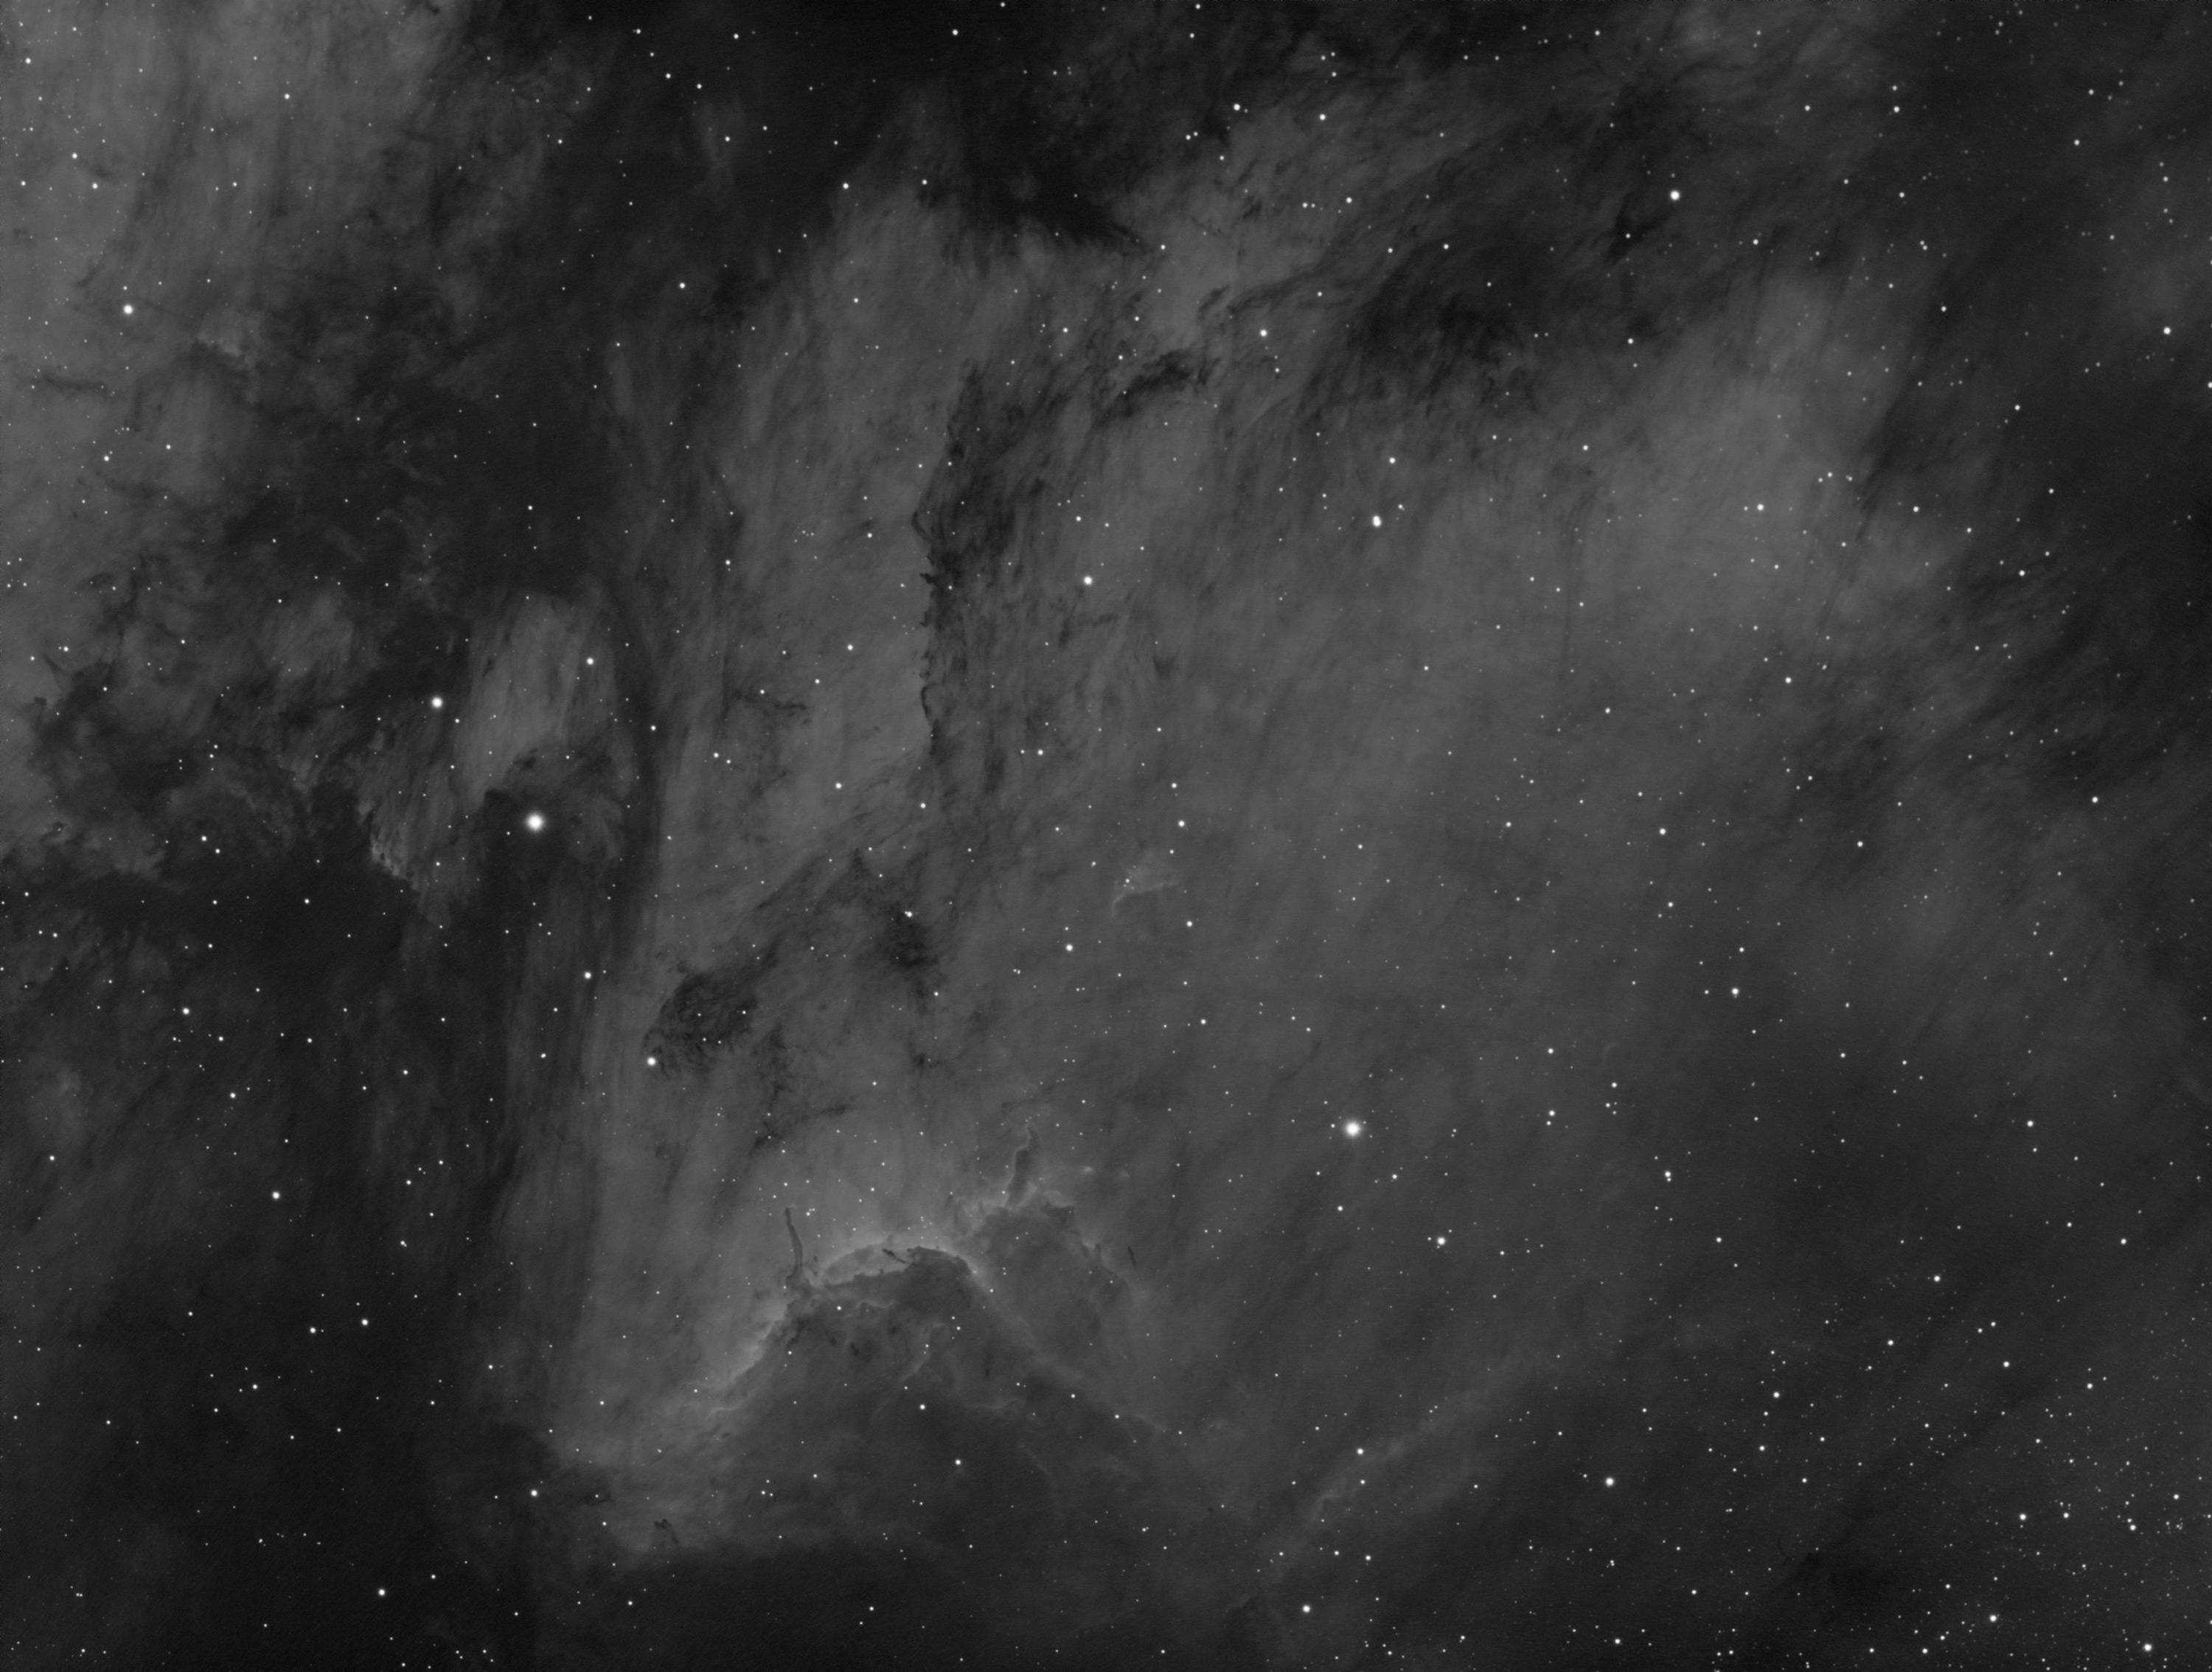 ic5070_ASI_3nm_2019_web.jpg